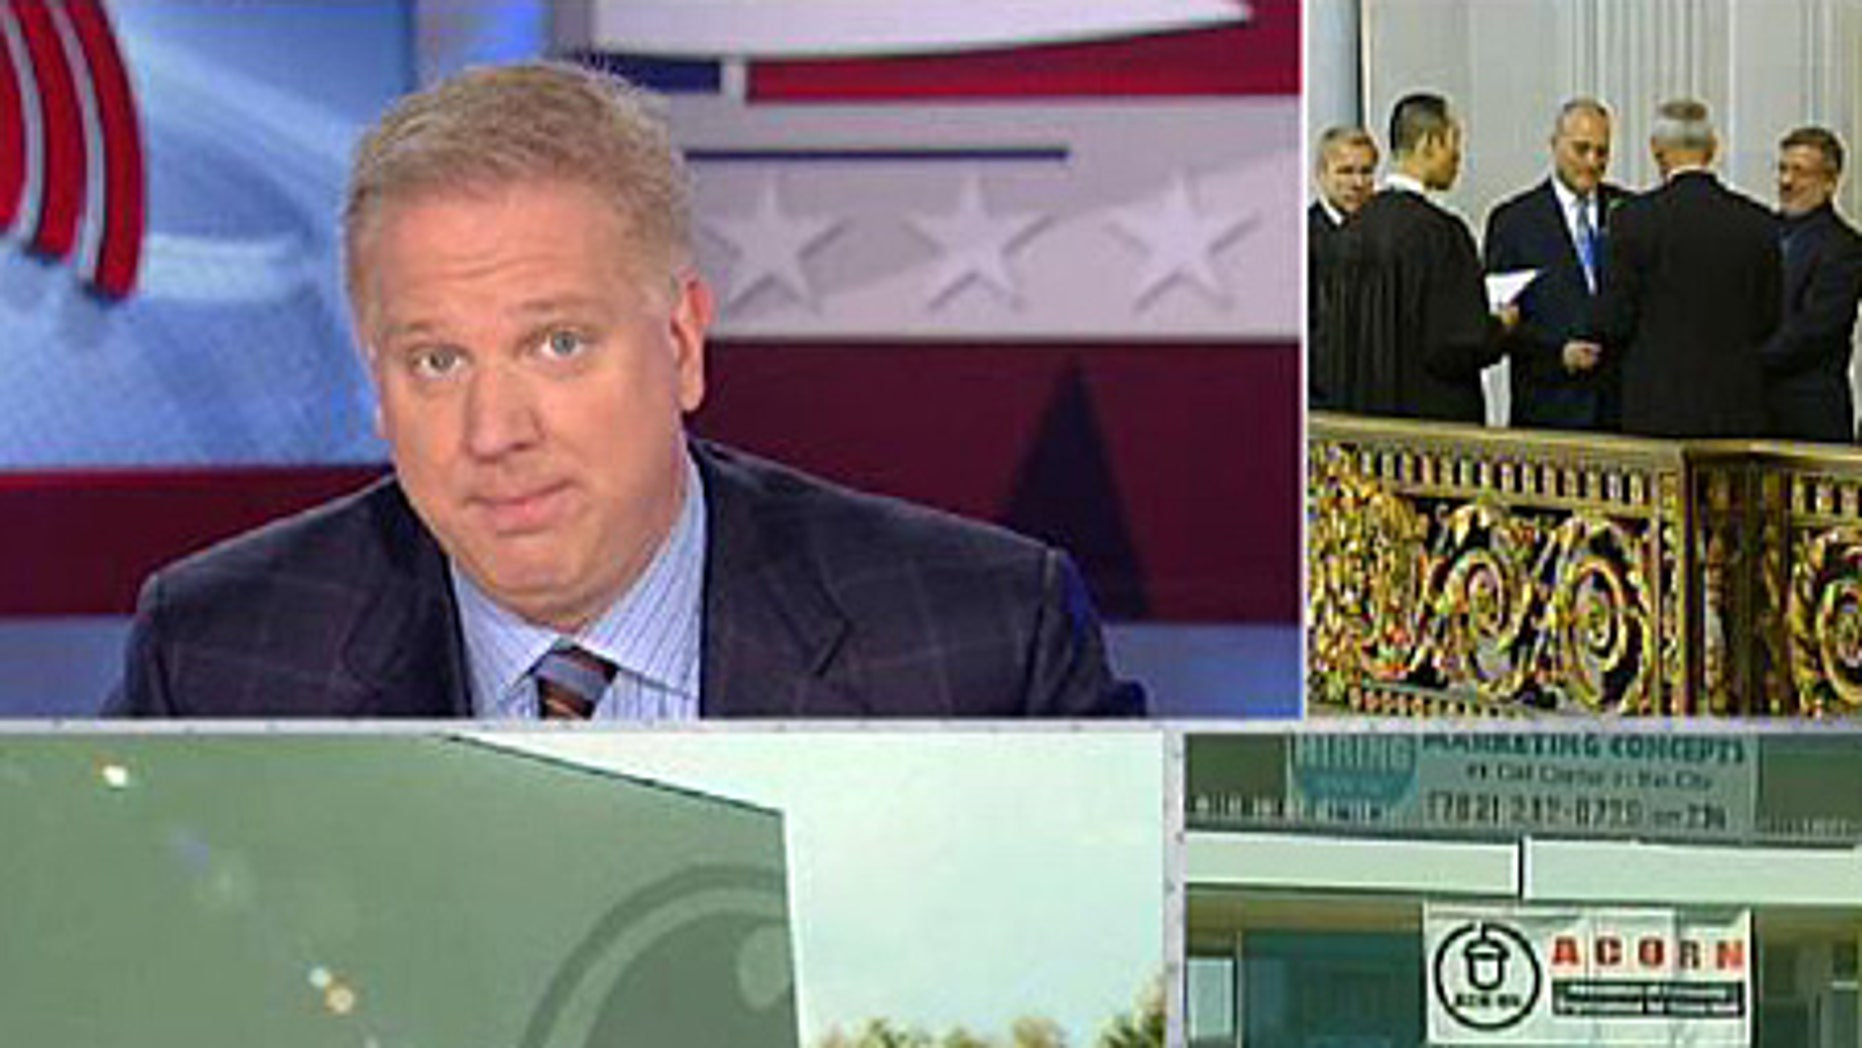 From ACORN to nationalization to defining marriage, Beck ties Tuesday's show together